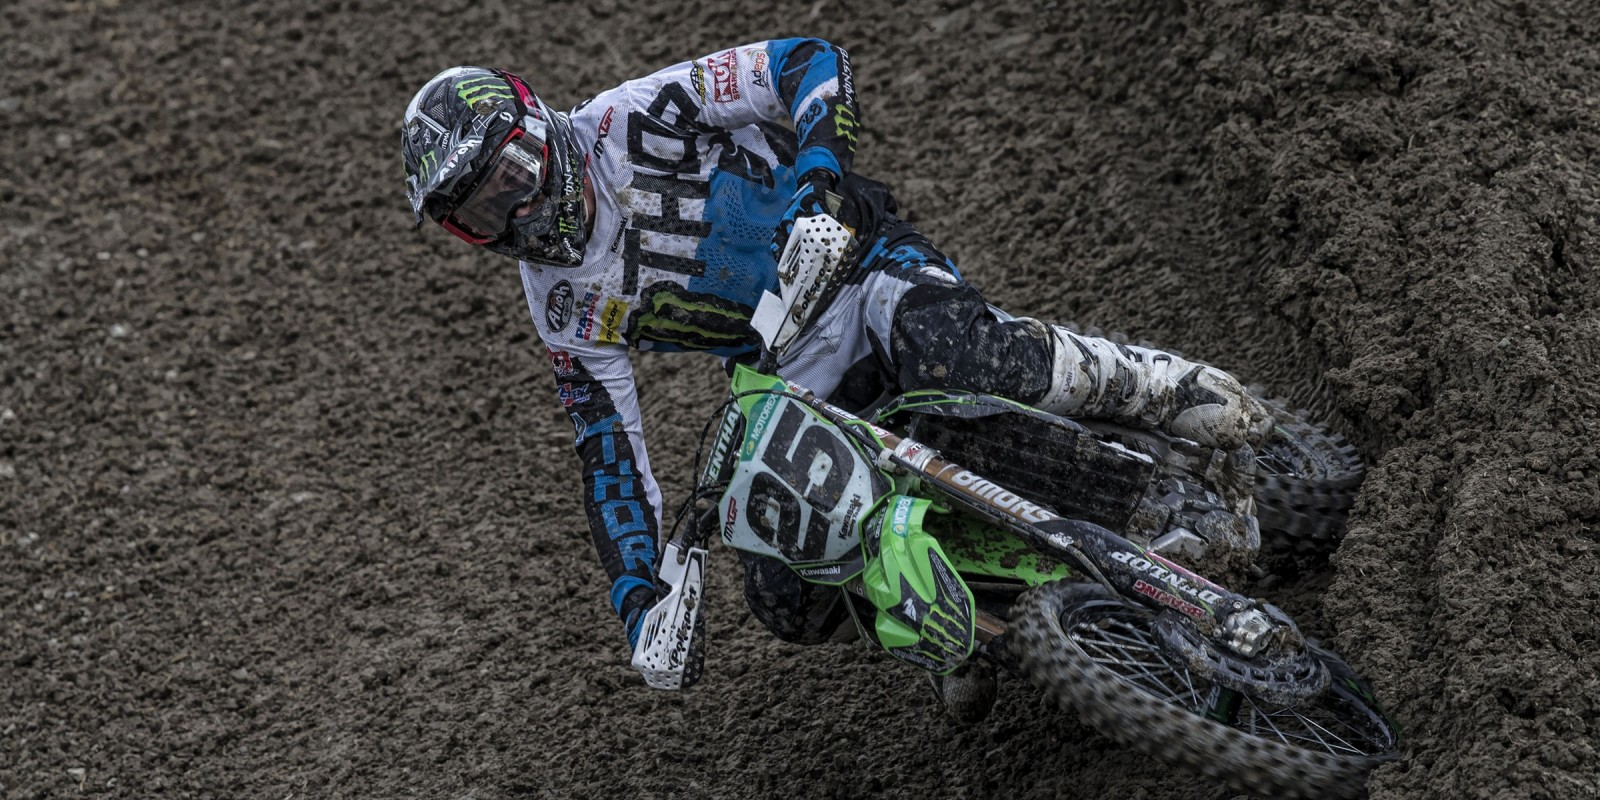 Clement Desalle at the 2017 Grand Prix of Russia